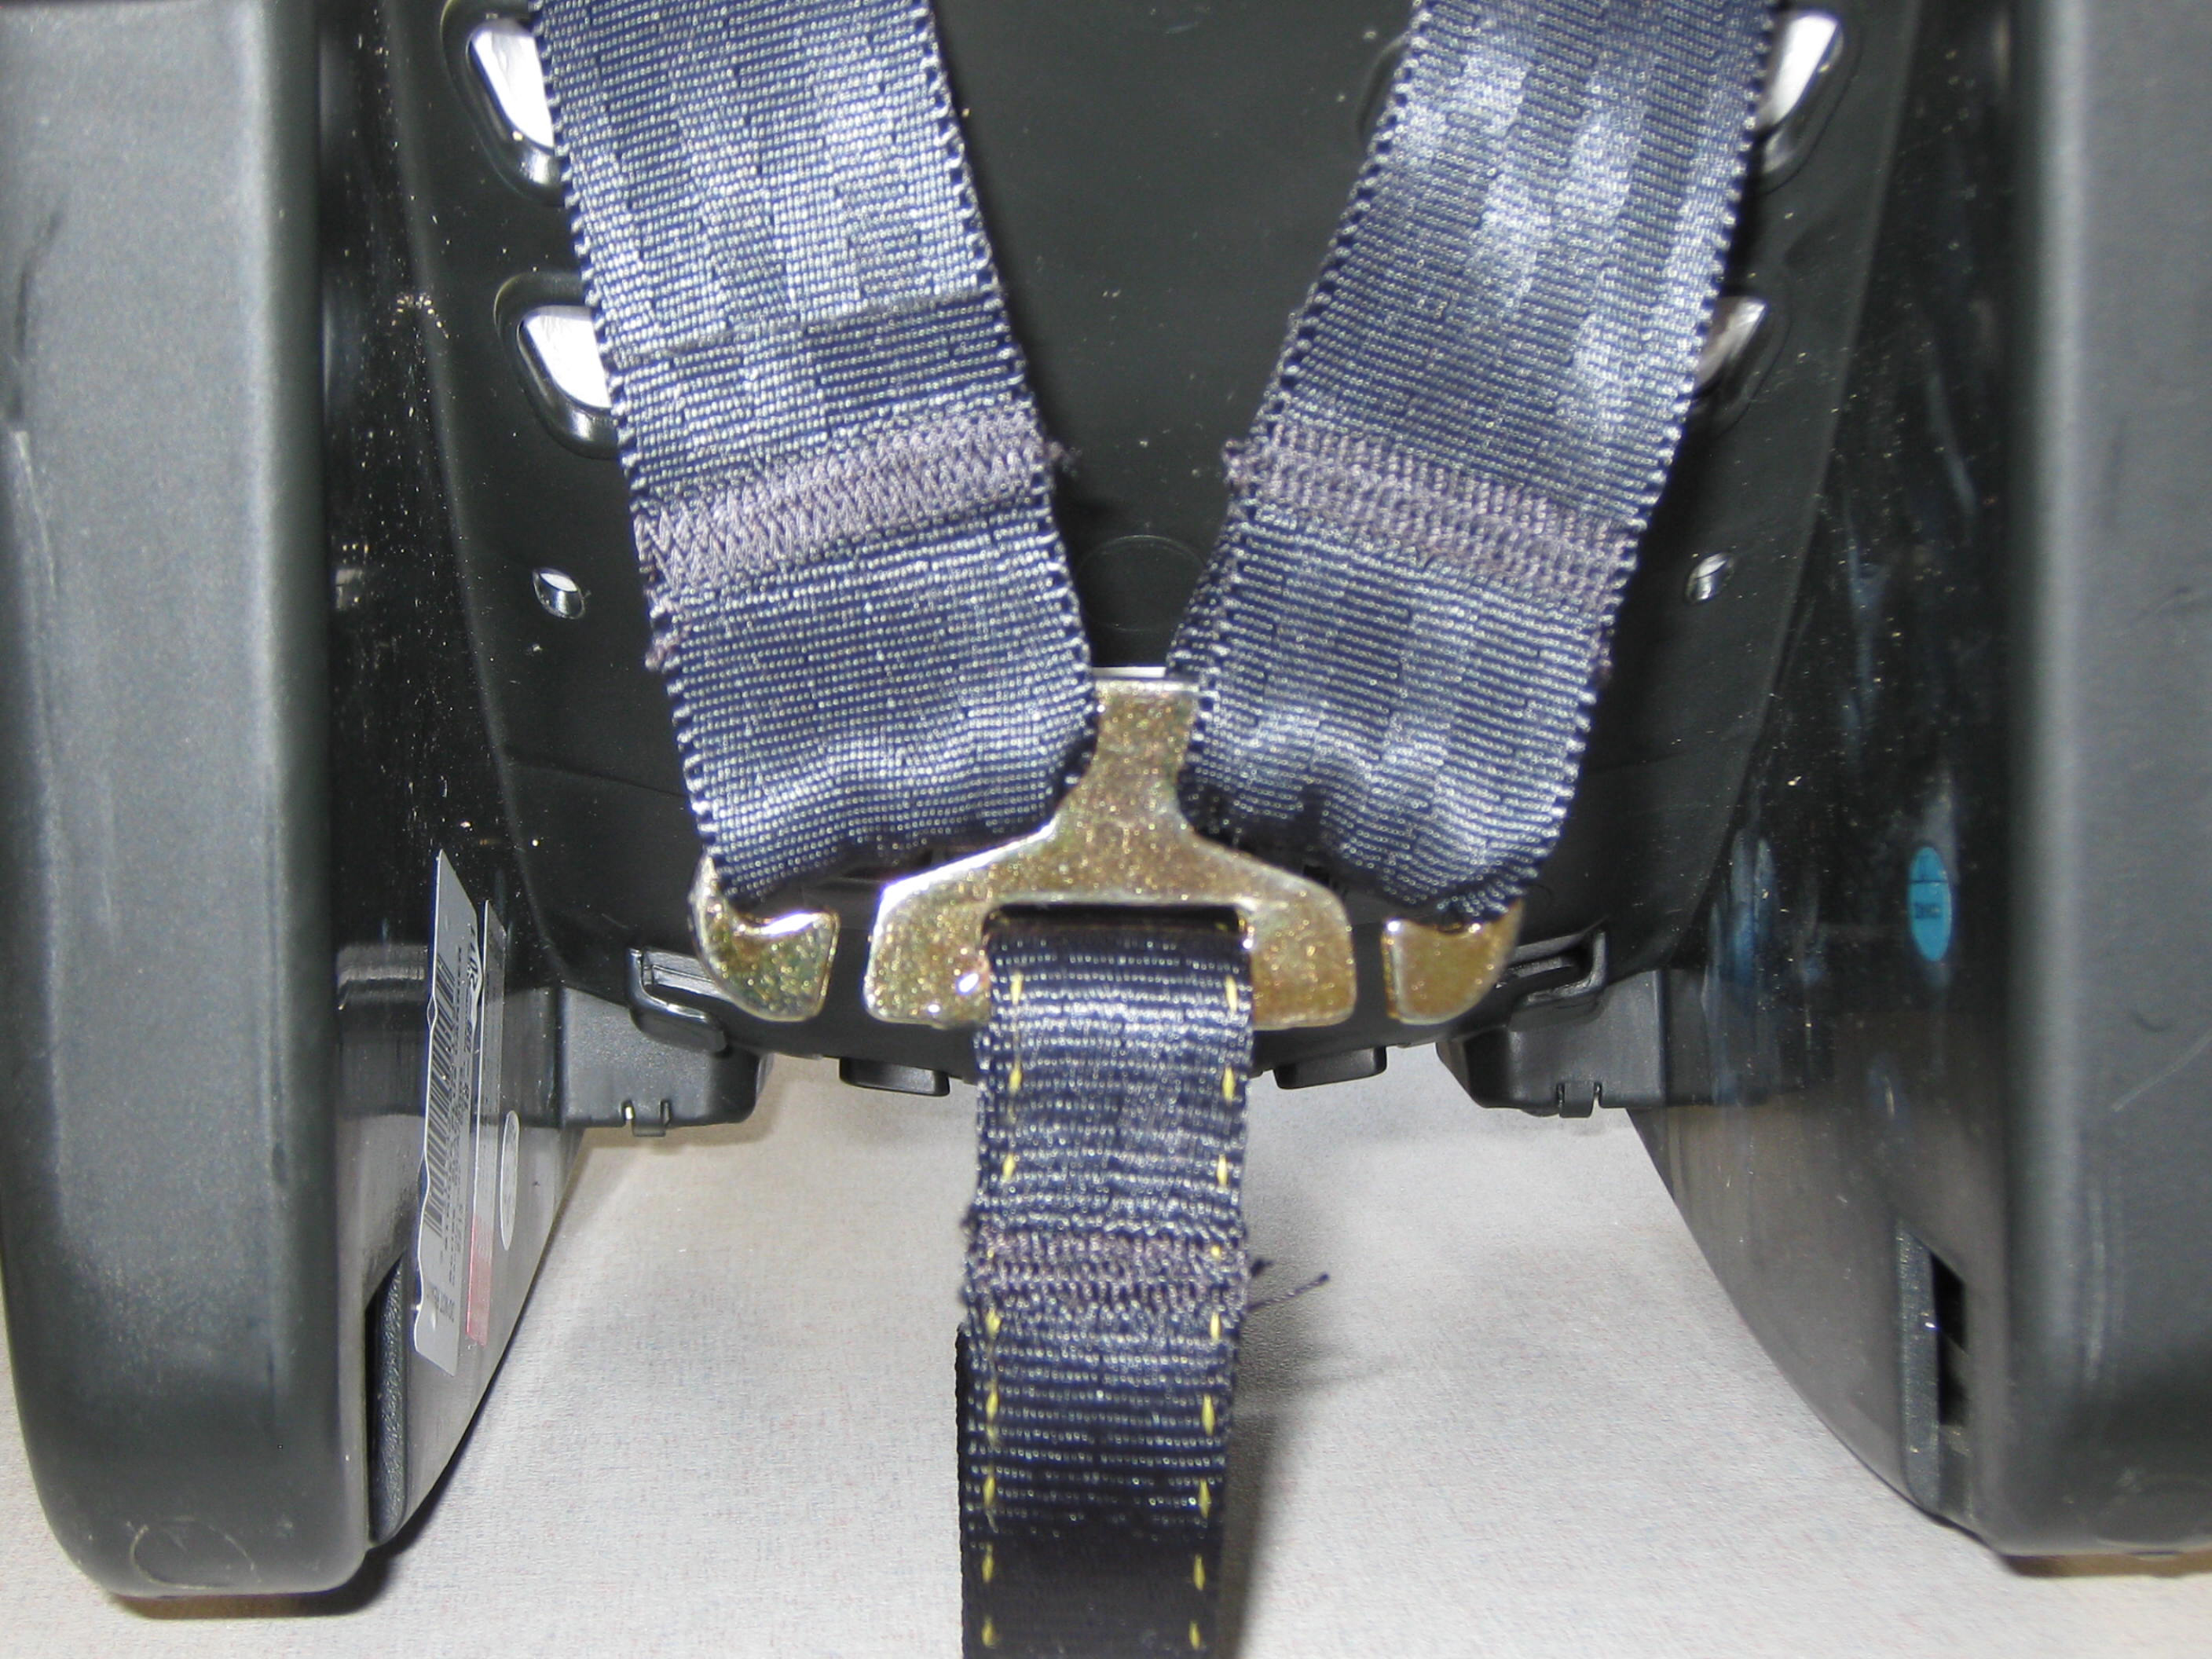 strider-plus-capsule-harness-detail.jpg